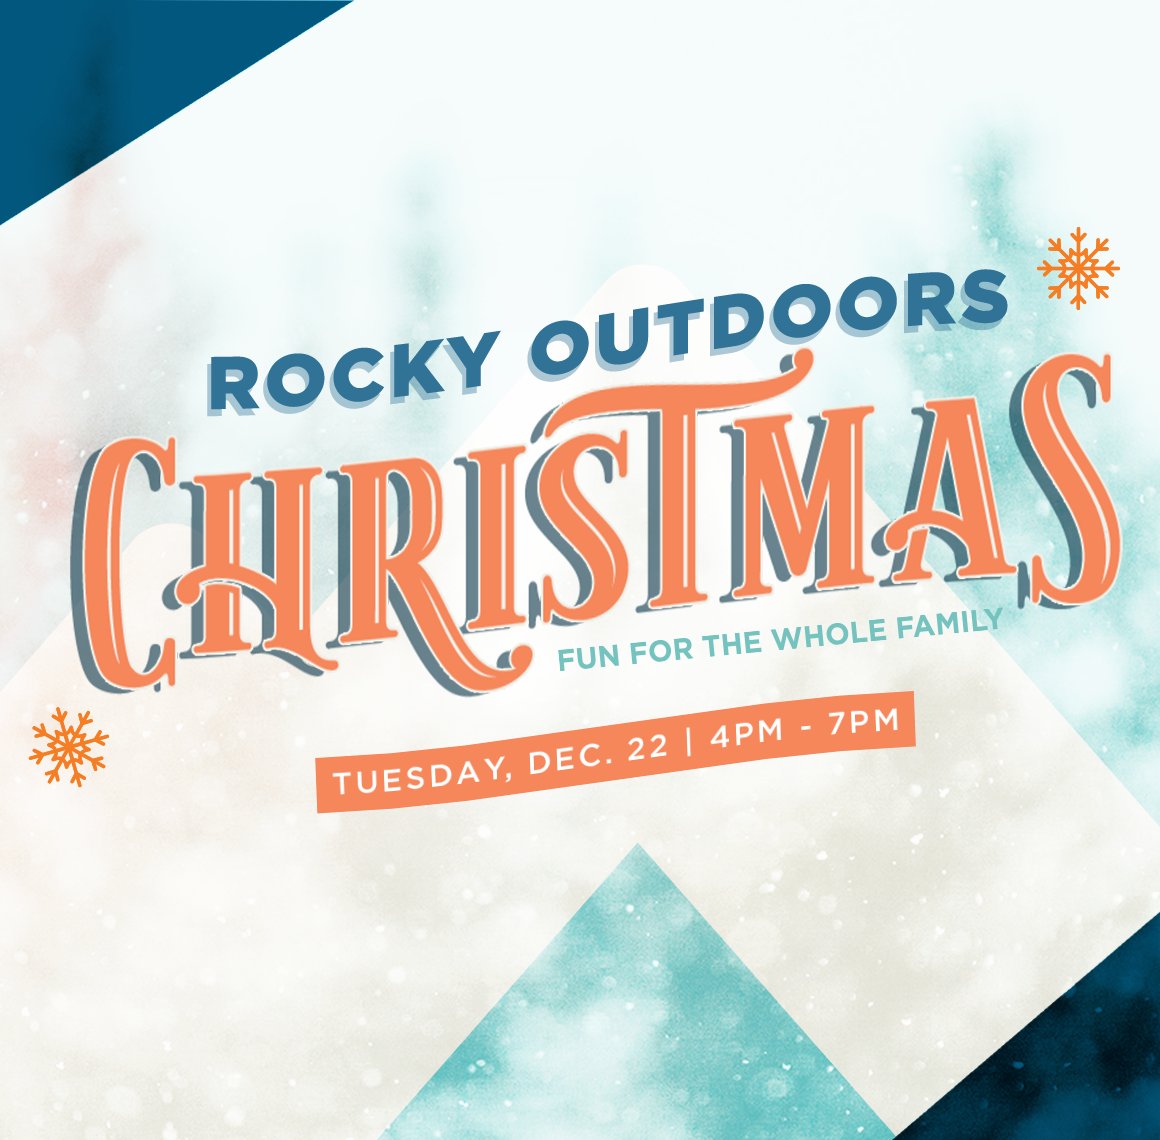 Rocky Outdoors Christmas